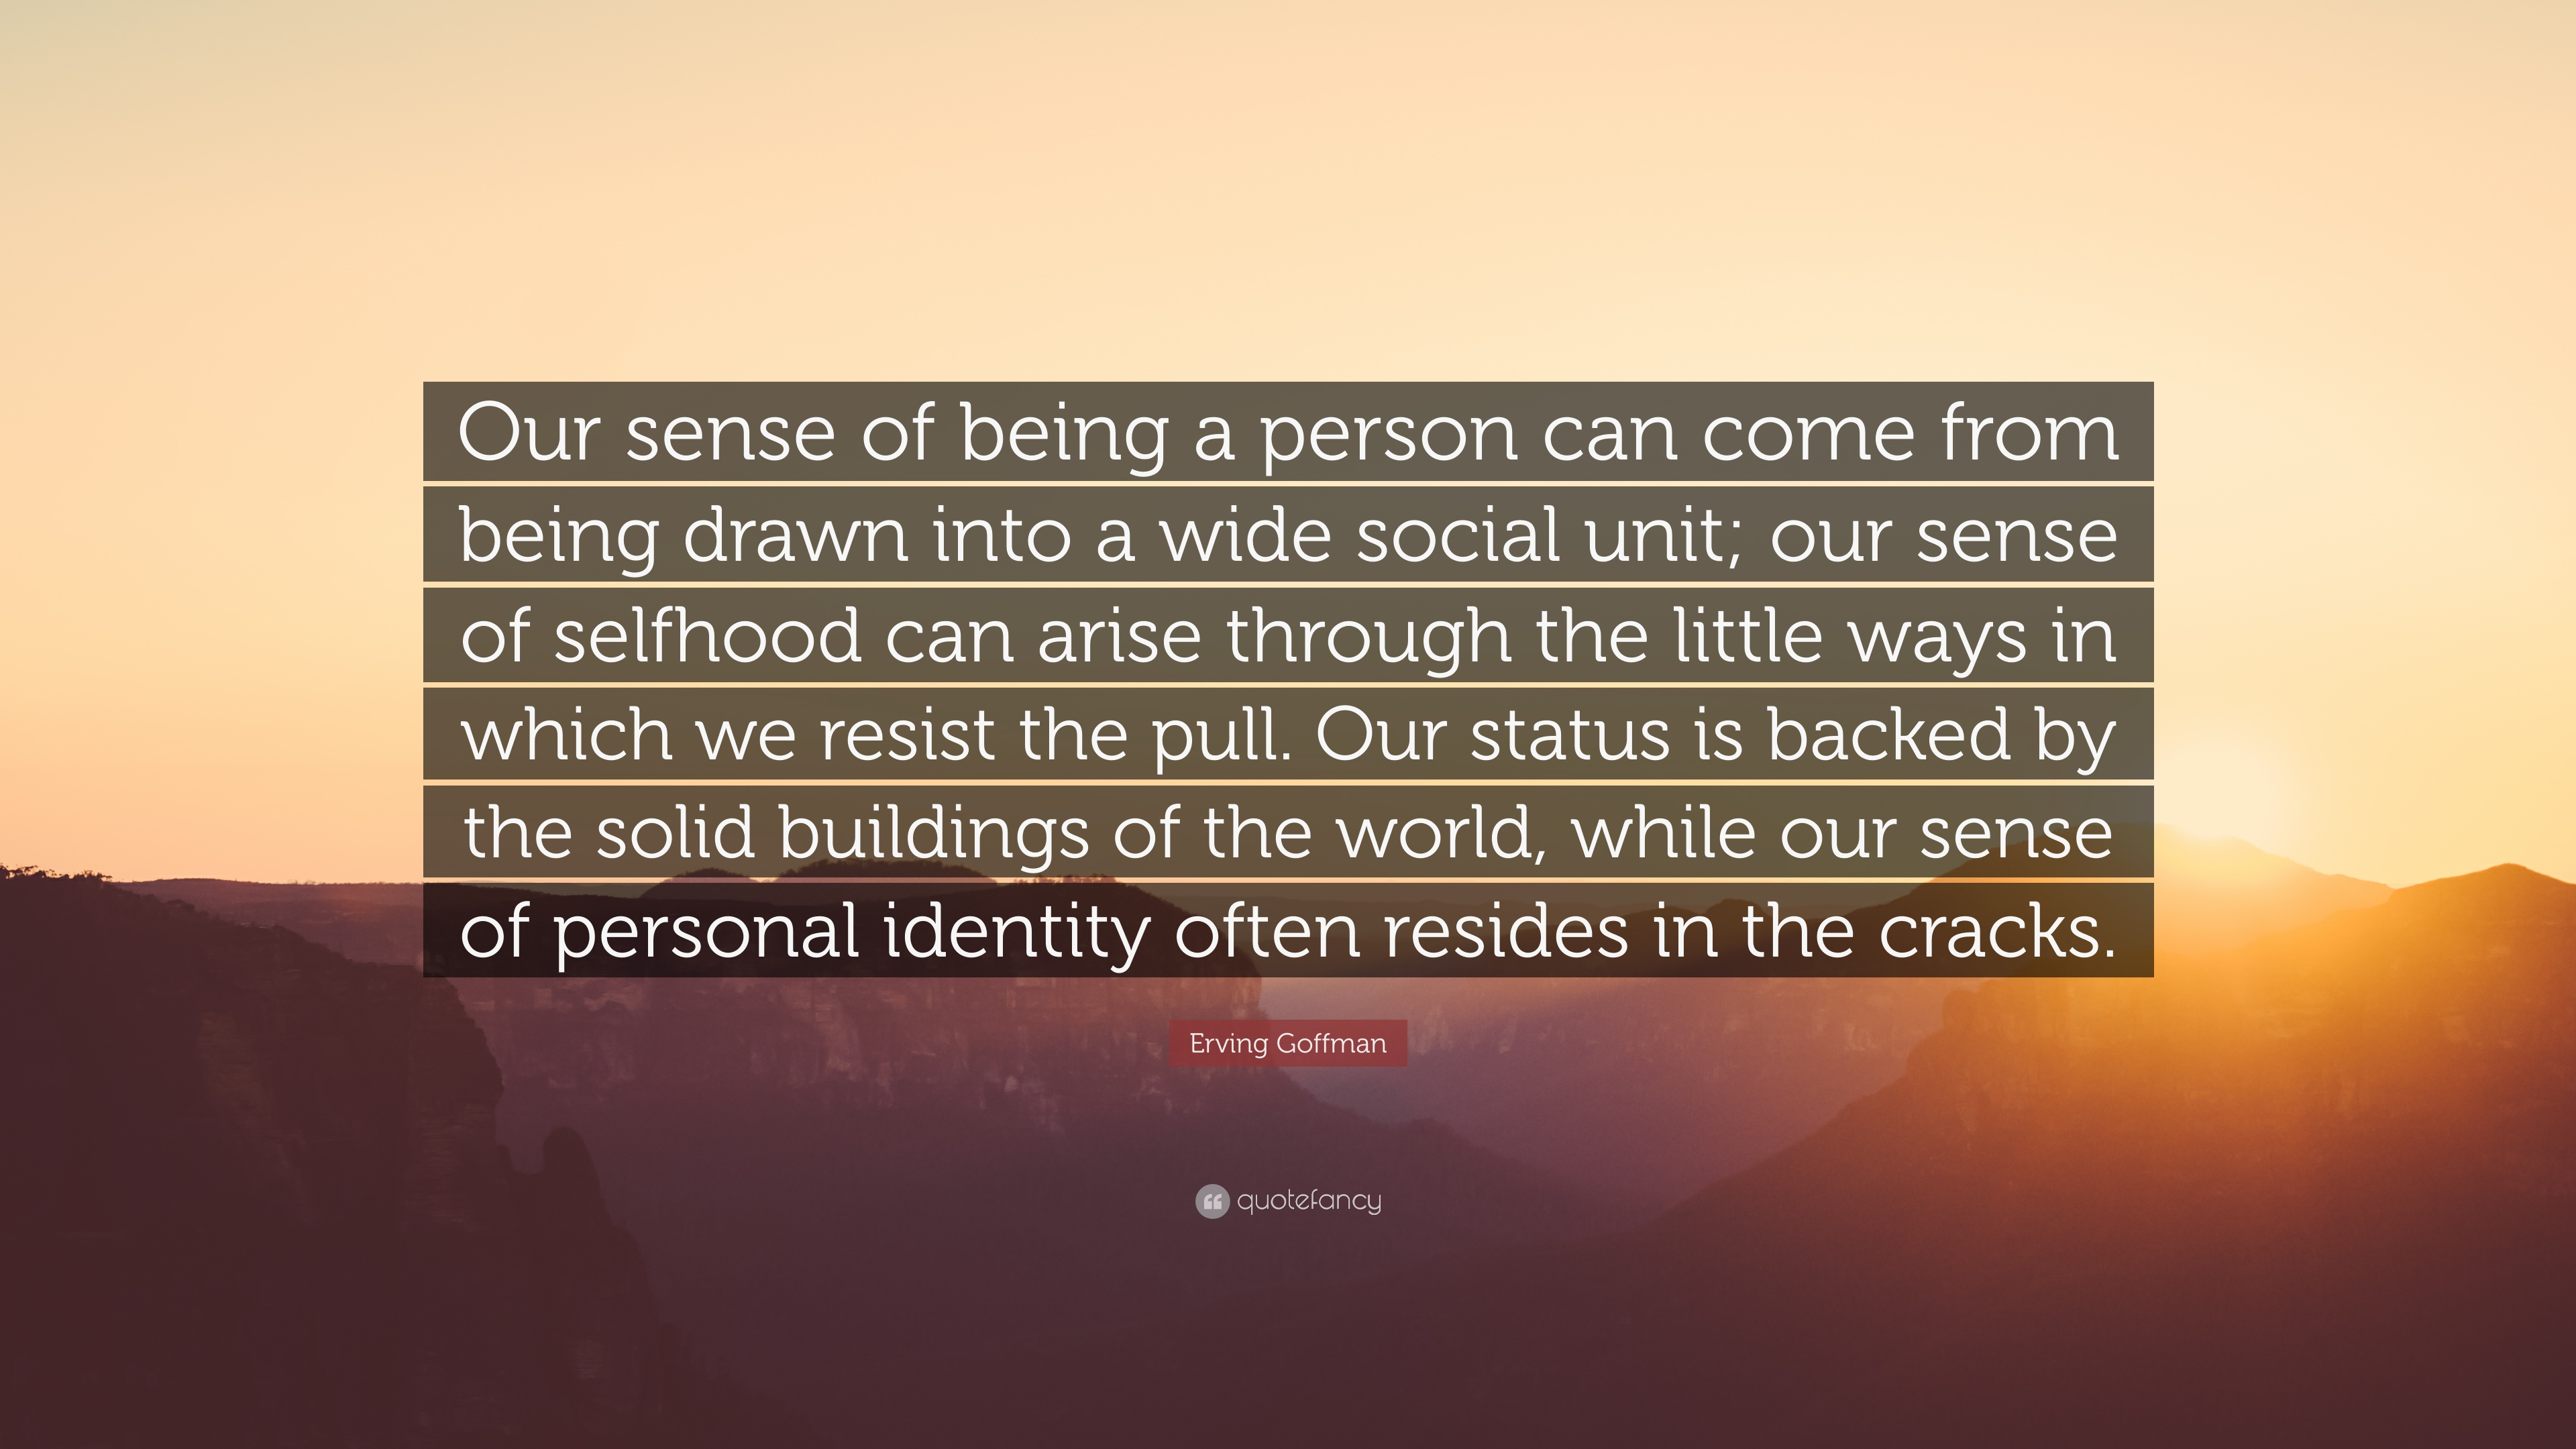 Erving goffman quote our sense of being a person can come from being drawn